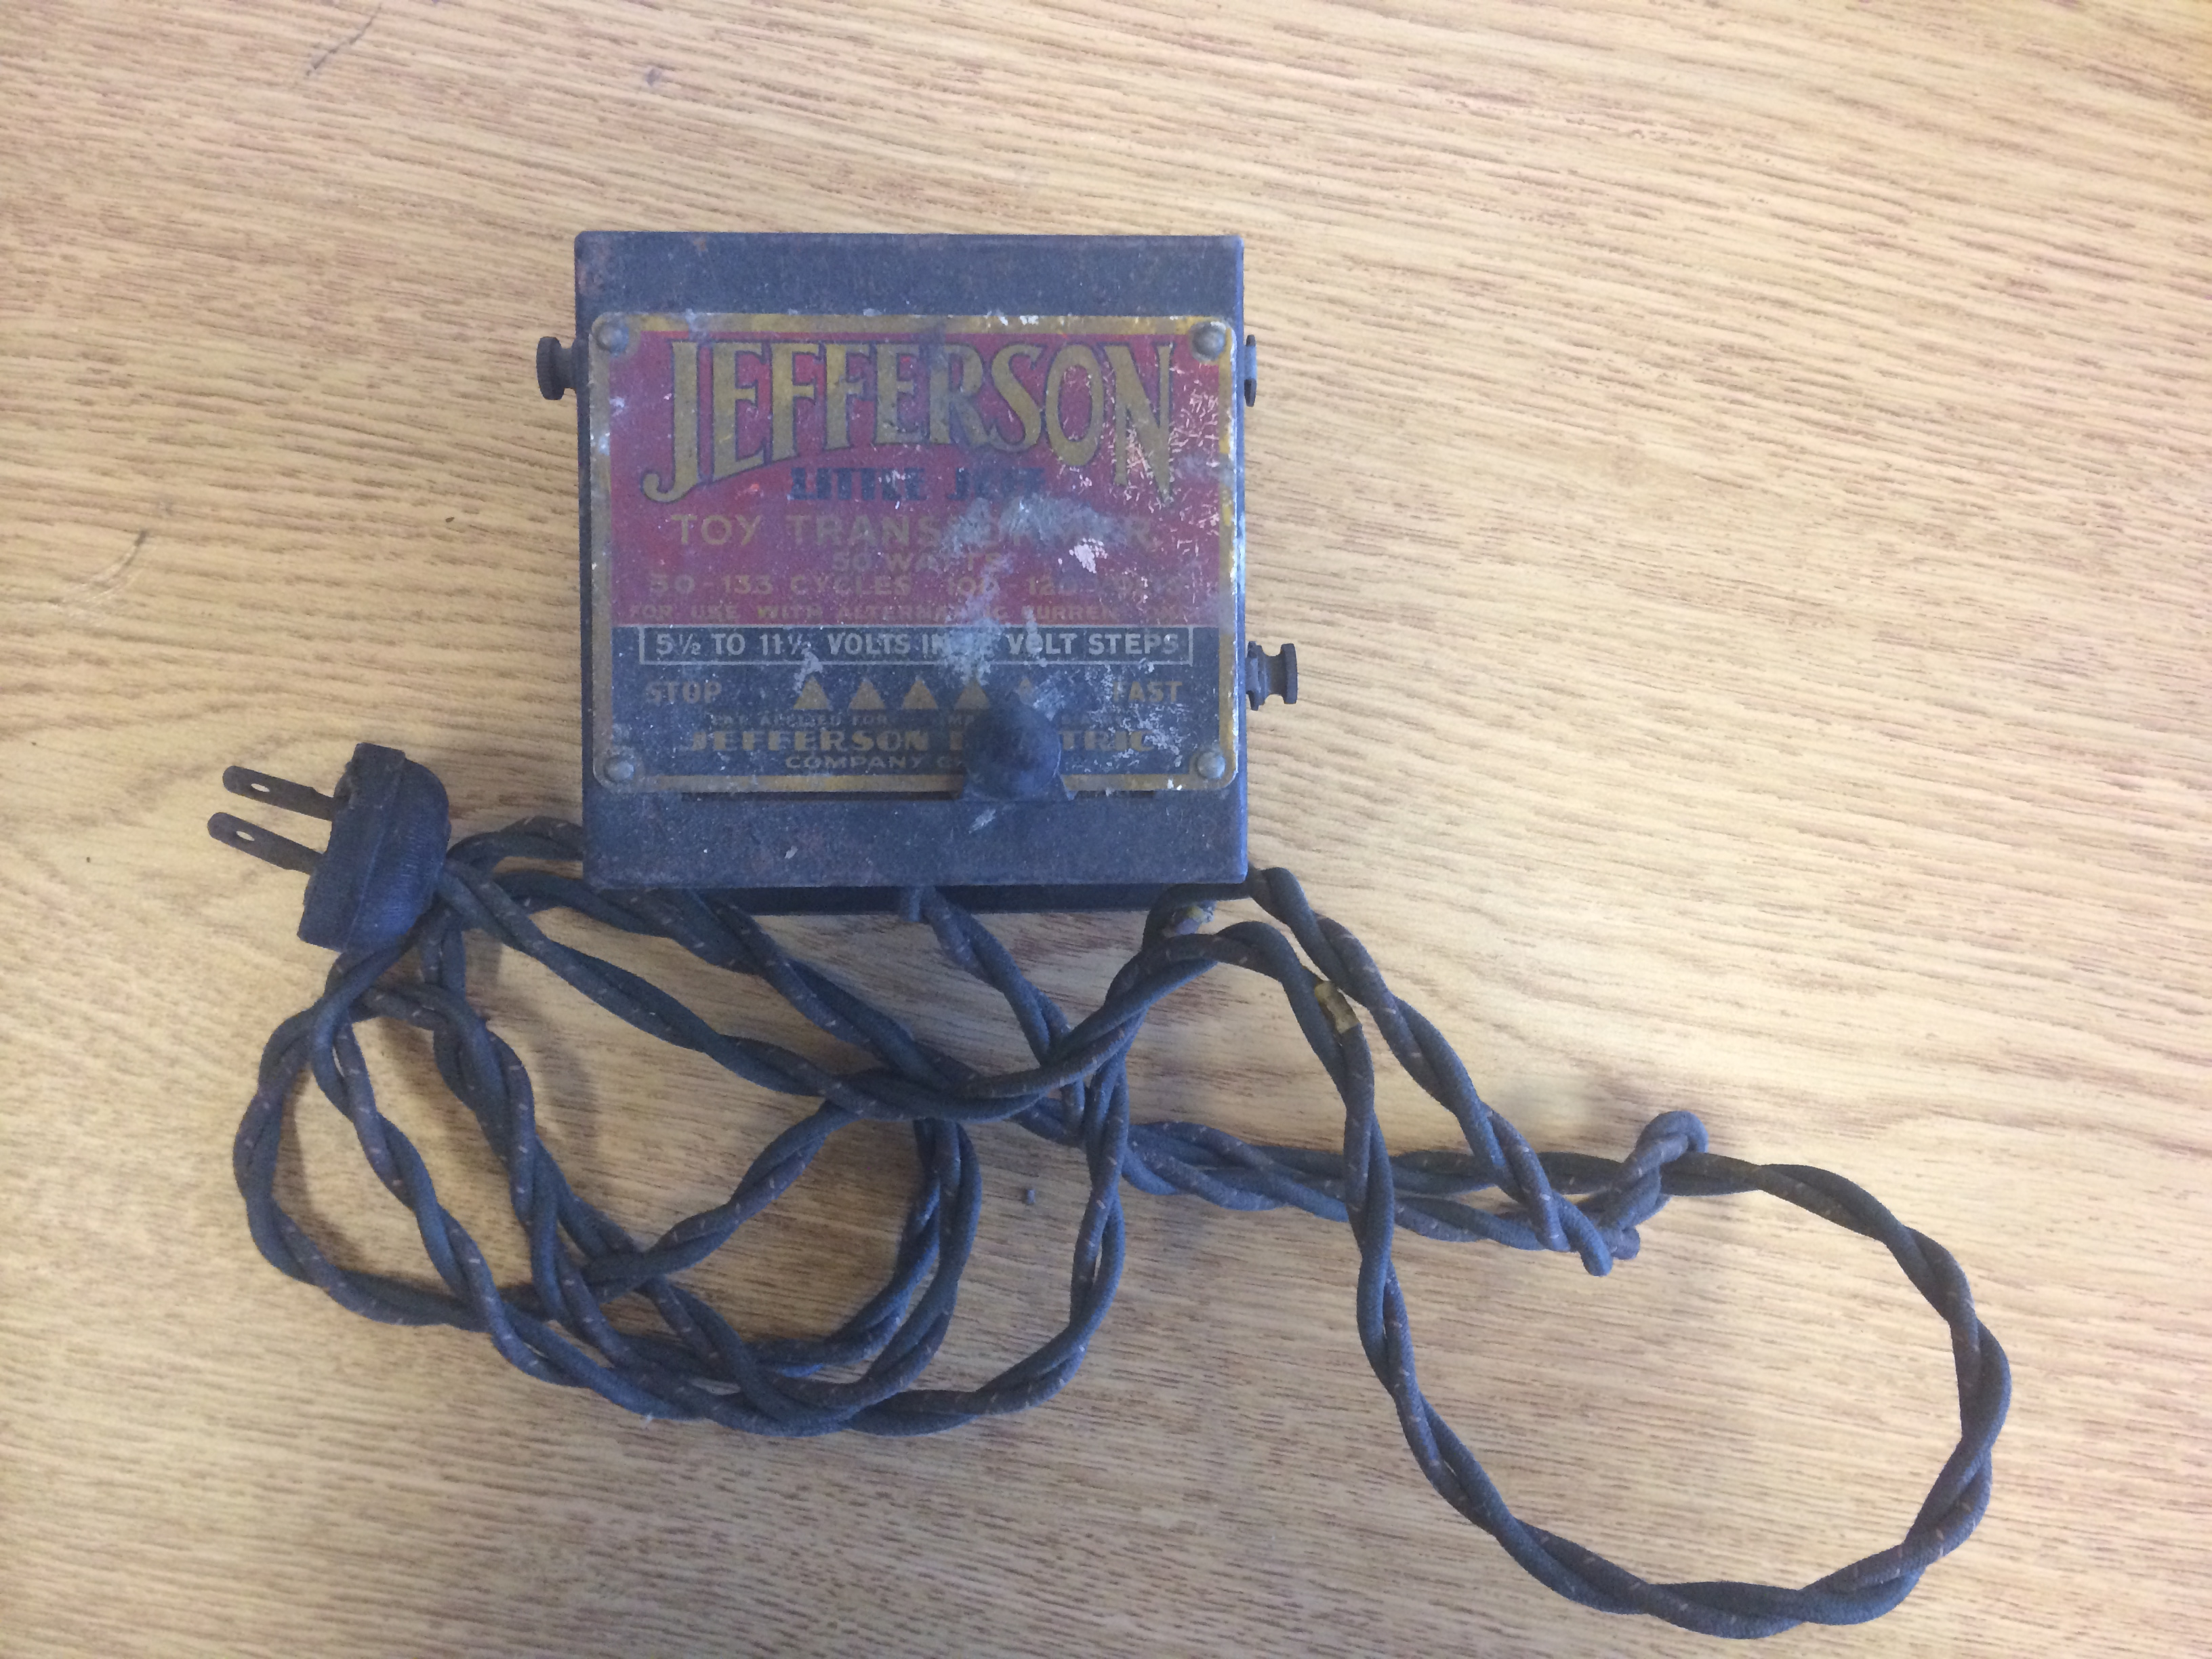 Jefferson 'Little Jeff' Toy Transformer (MS-305, Box 7)